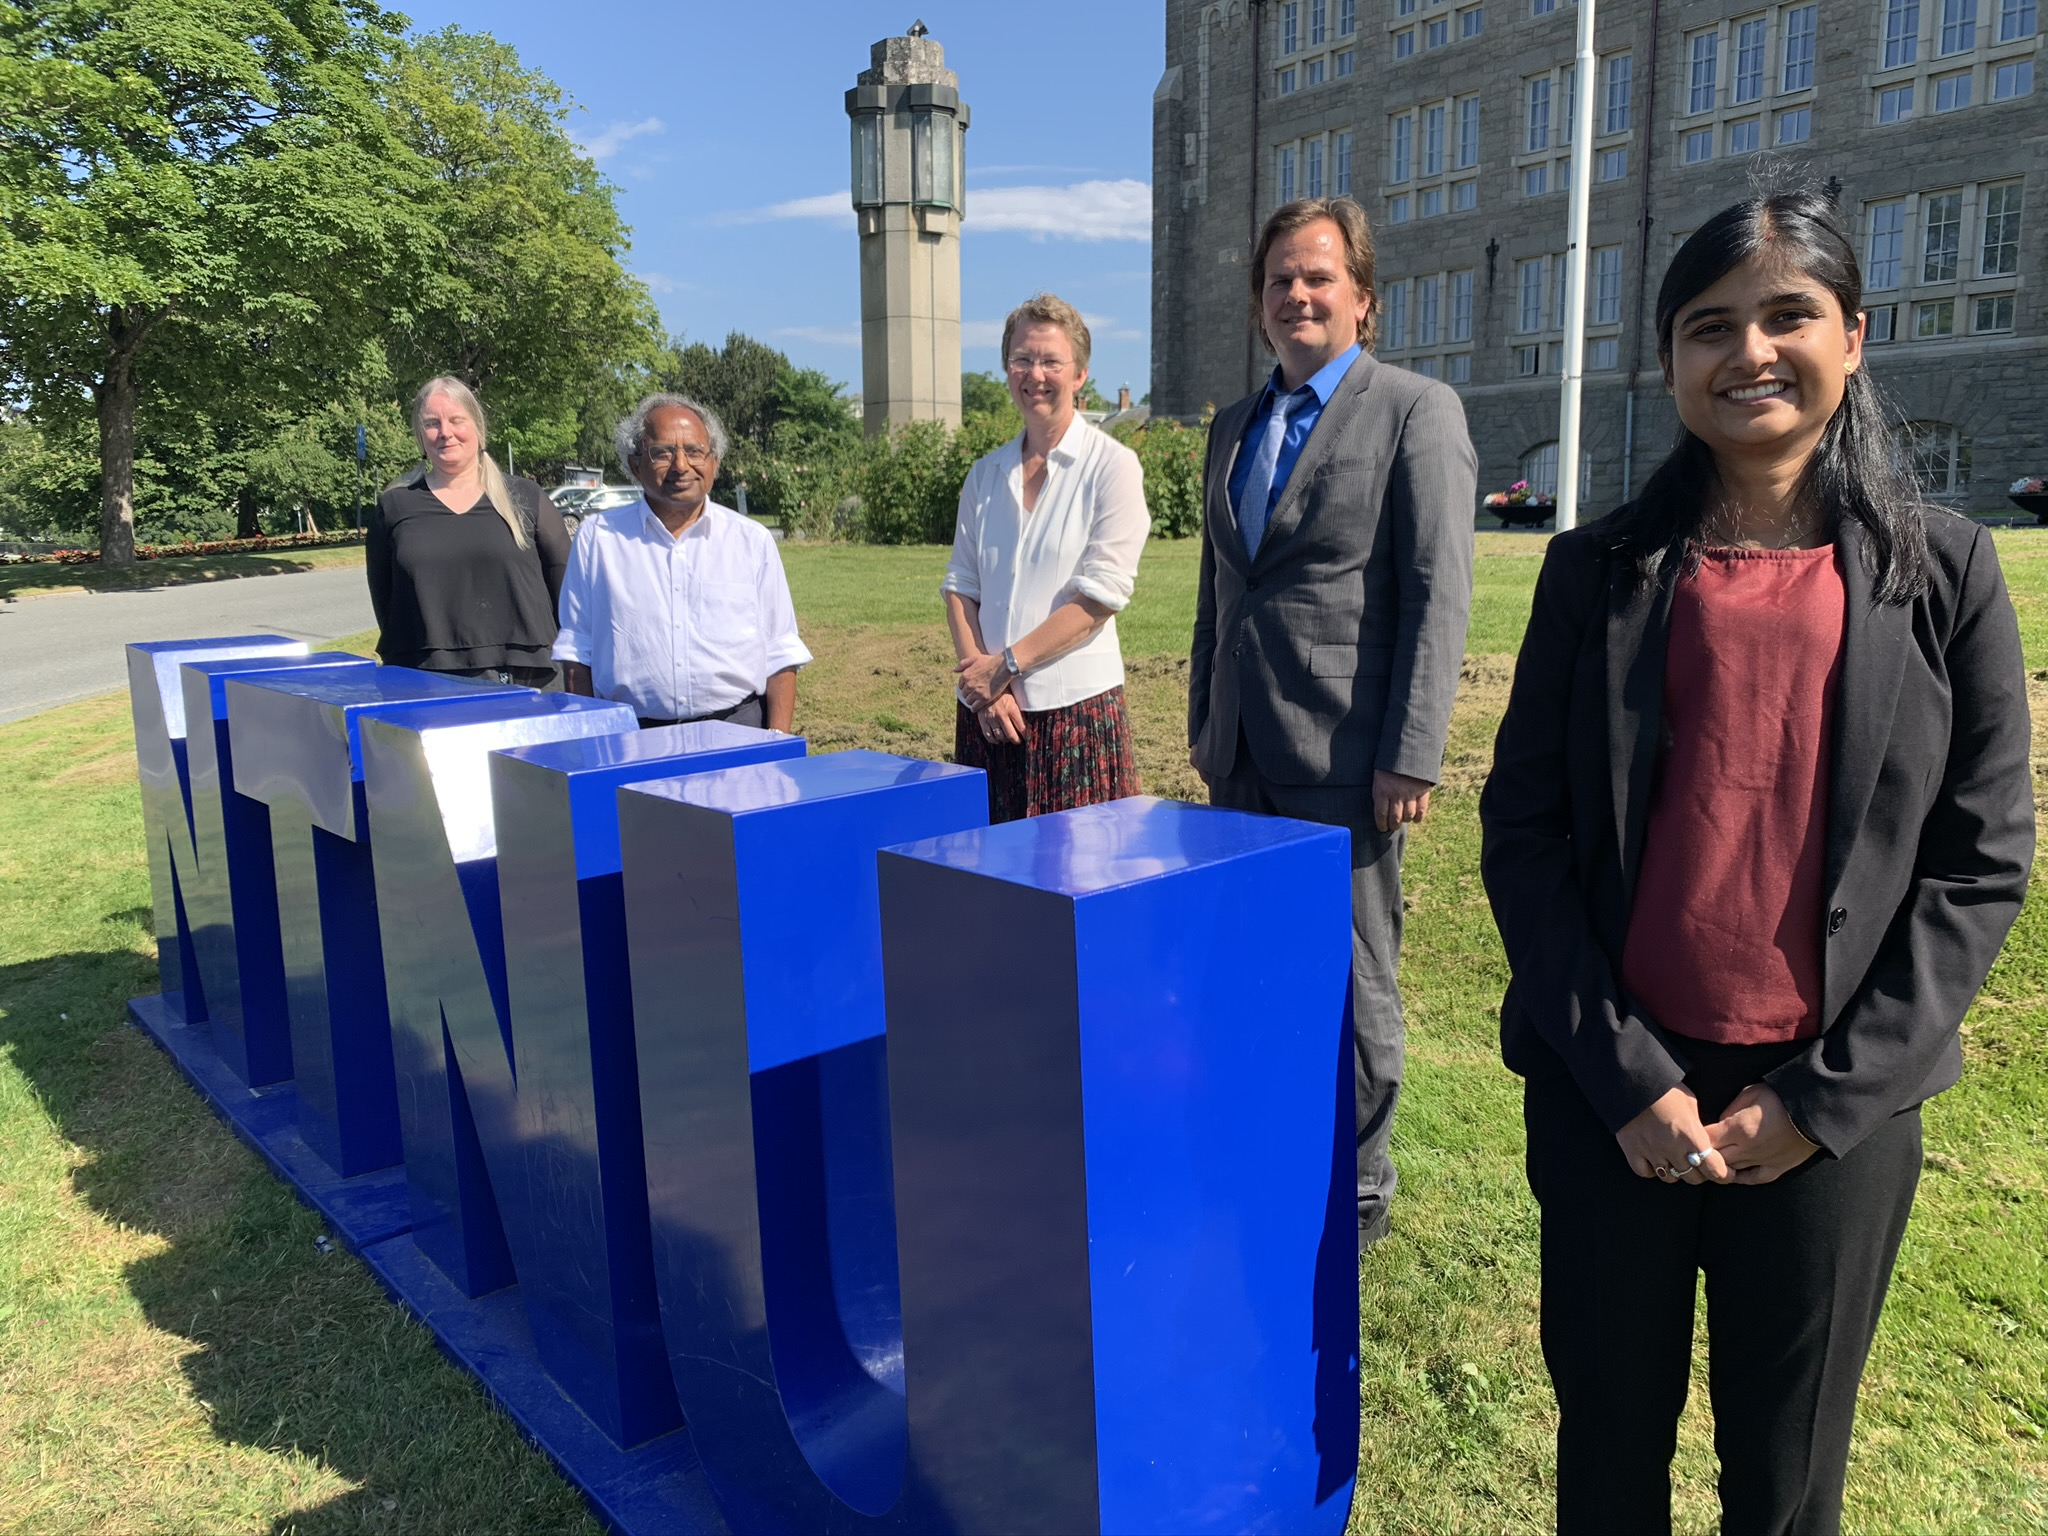 Priyanka Dhar defended her thesis for the PhD degree